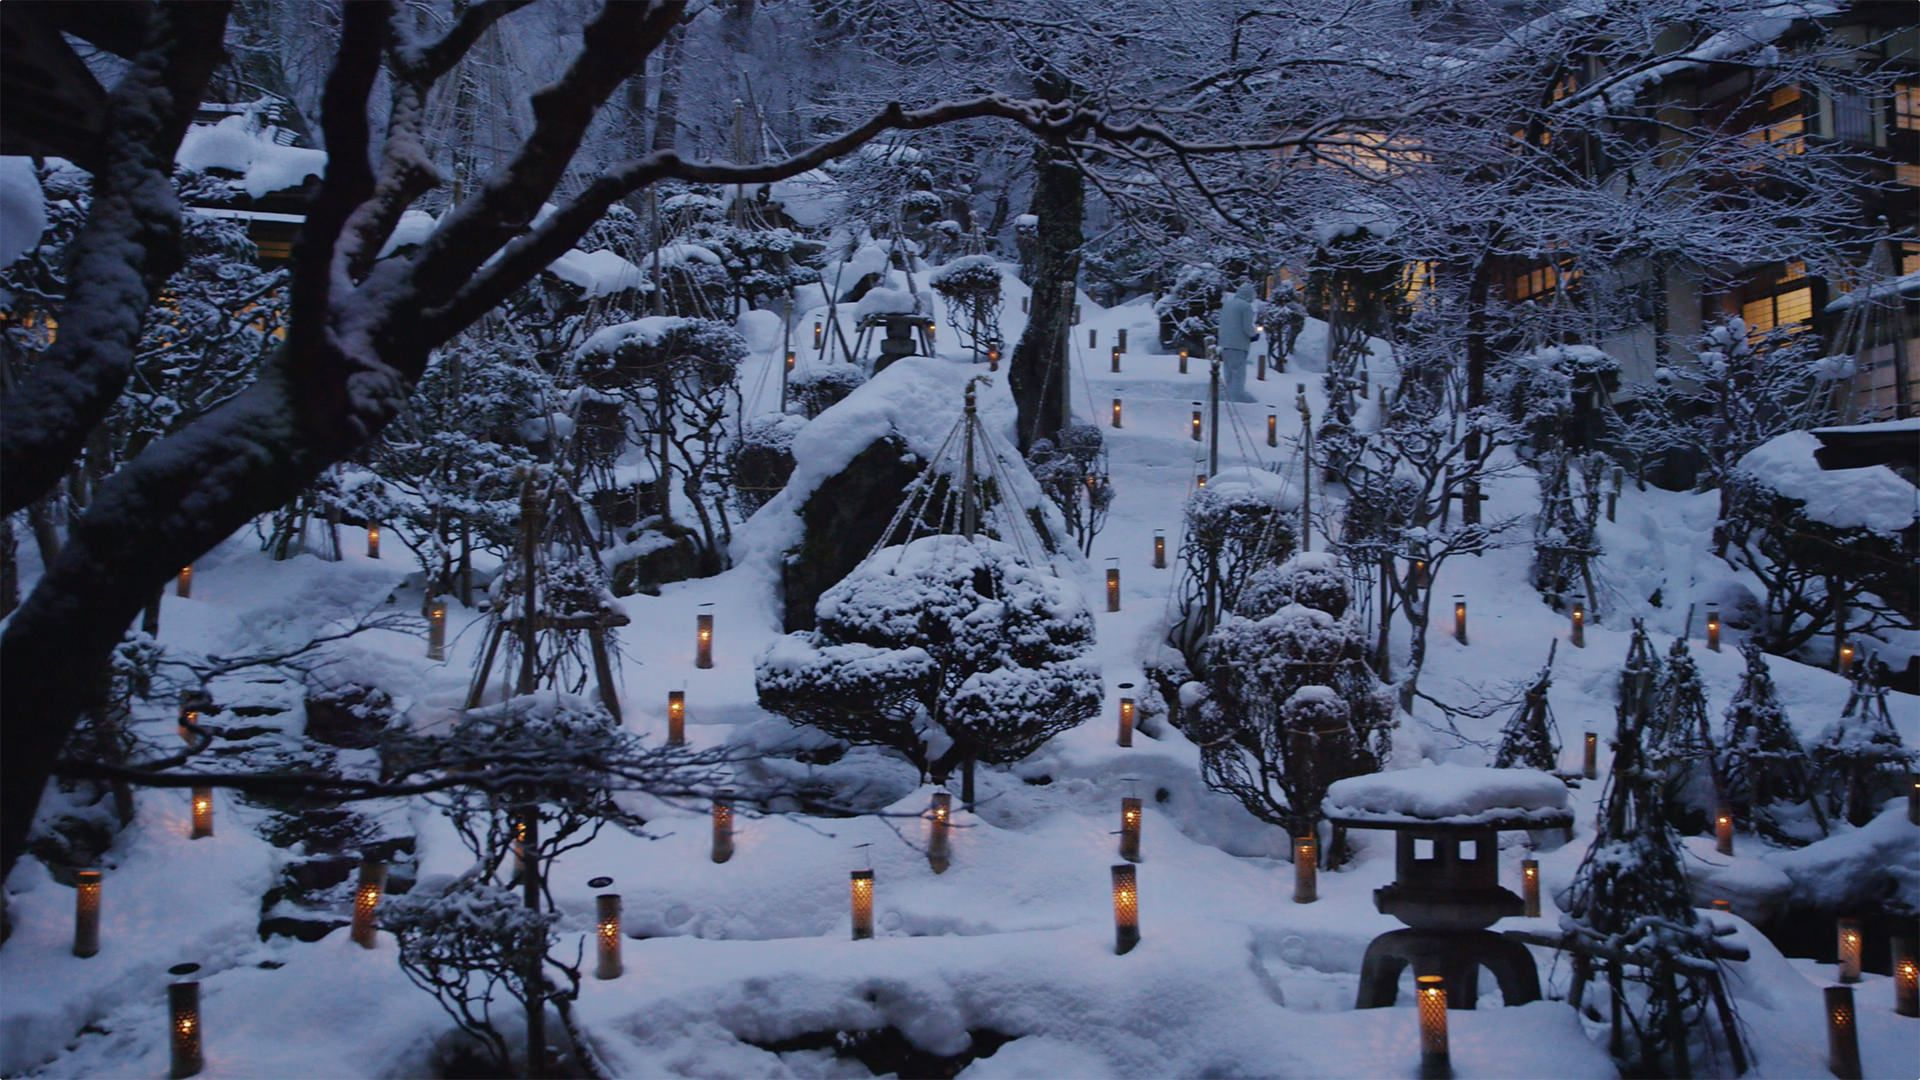 Snow-watching Candles of Mukaitaki - 向瀧の雪見ろうそく